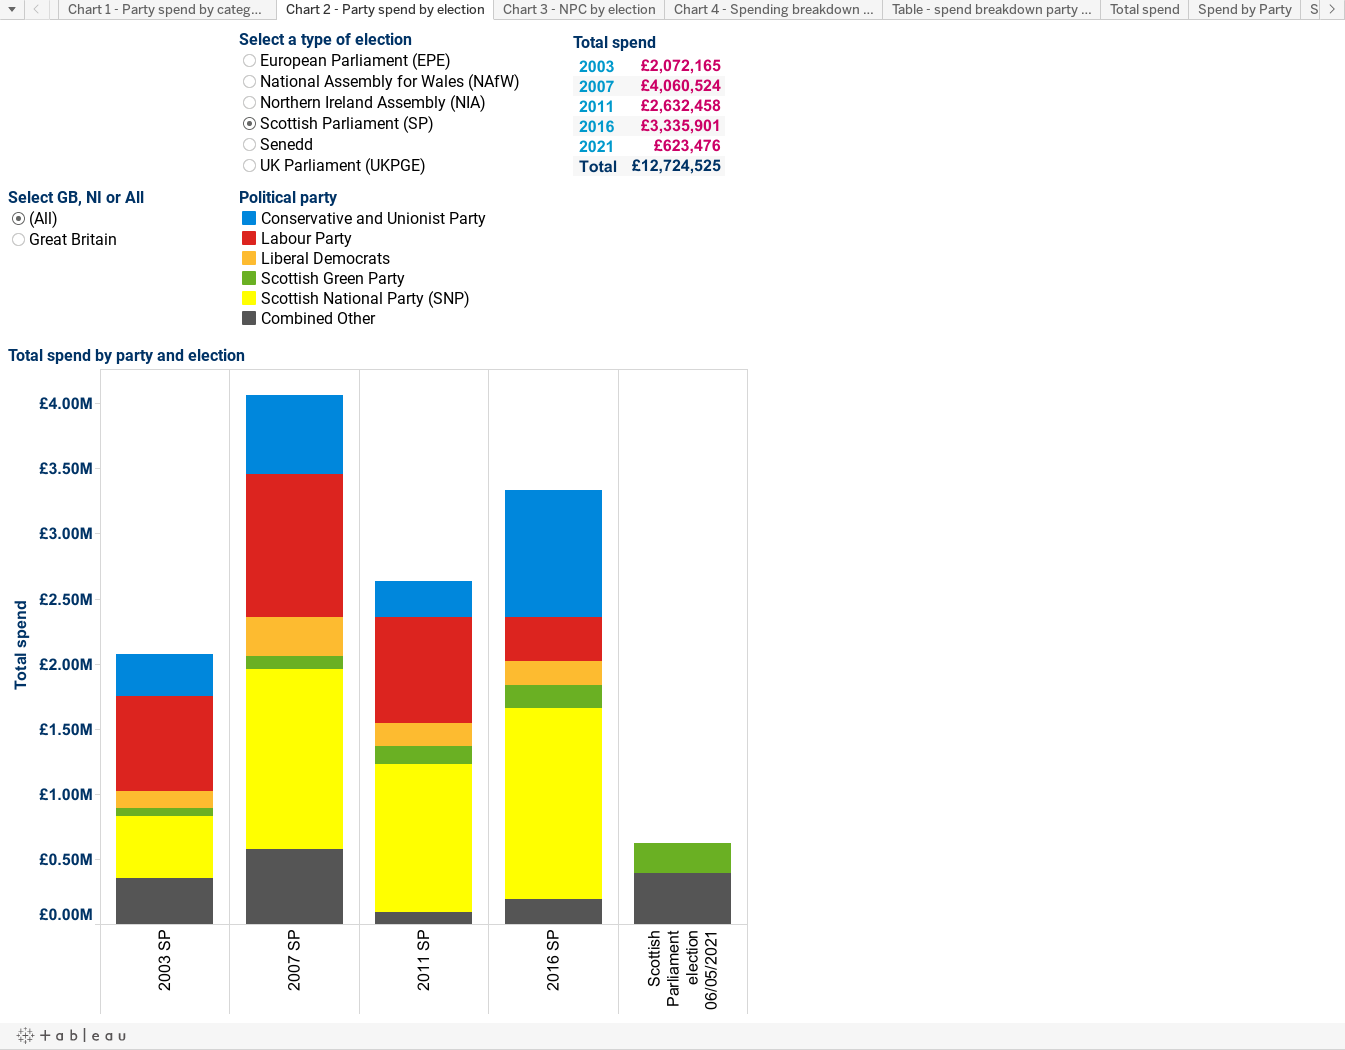 Chart 2 - Party spend by election